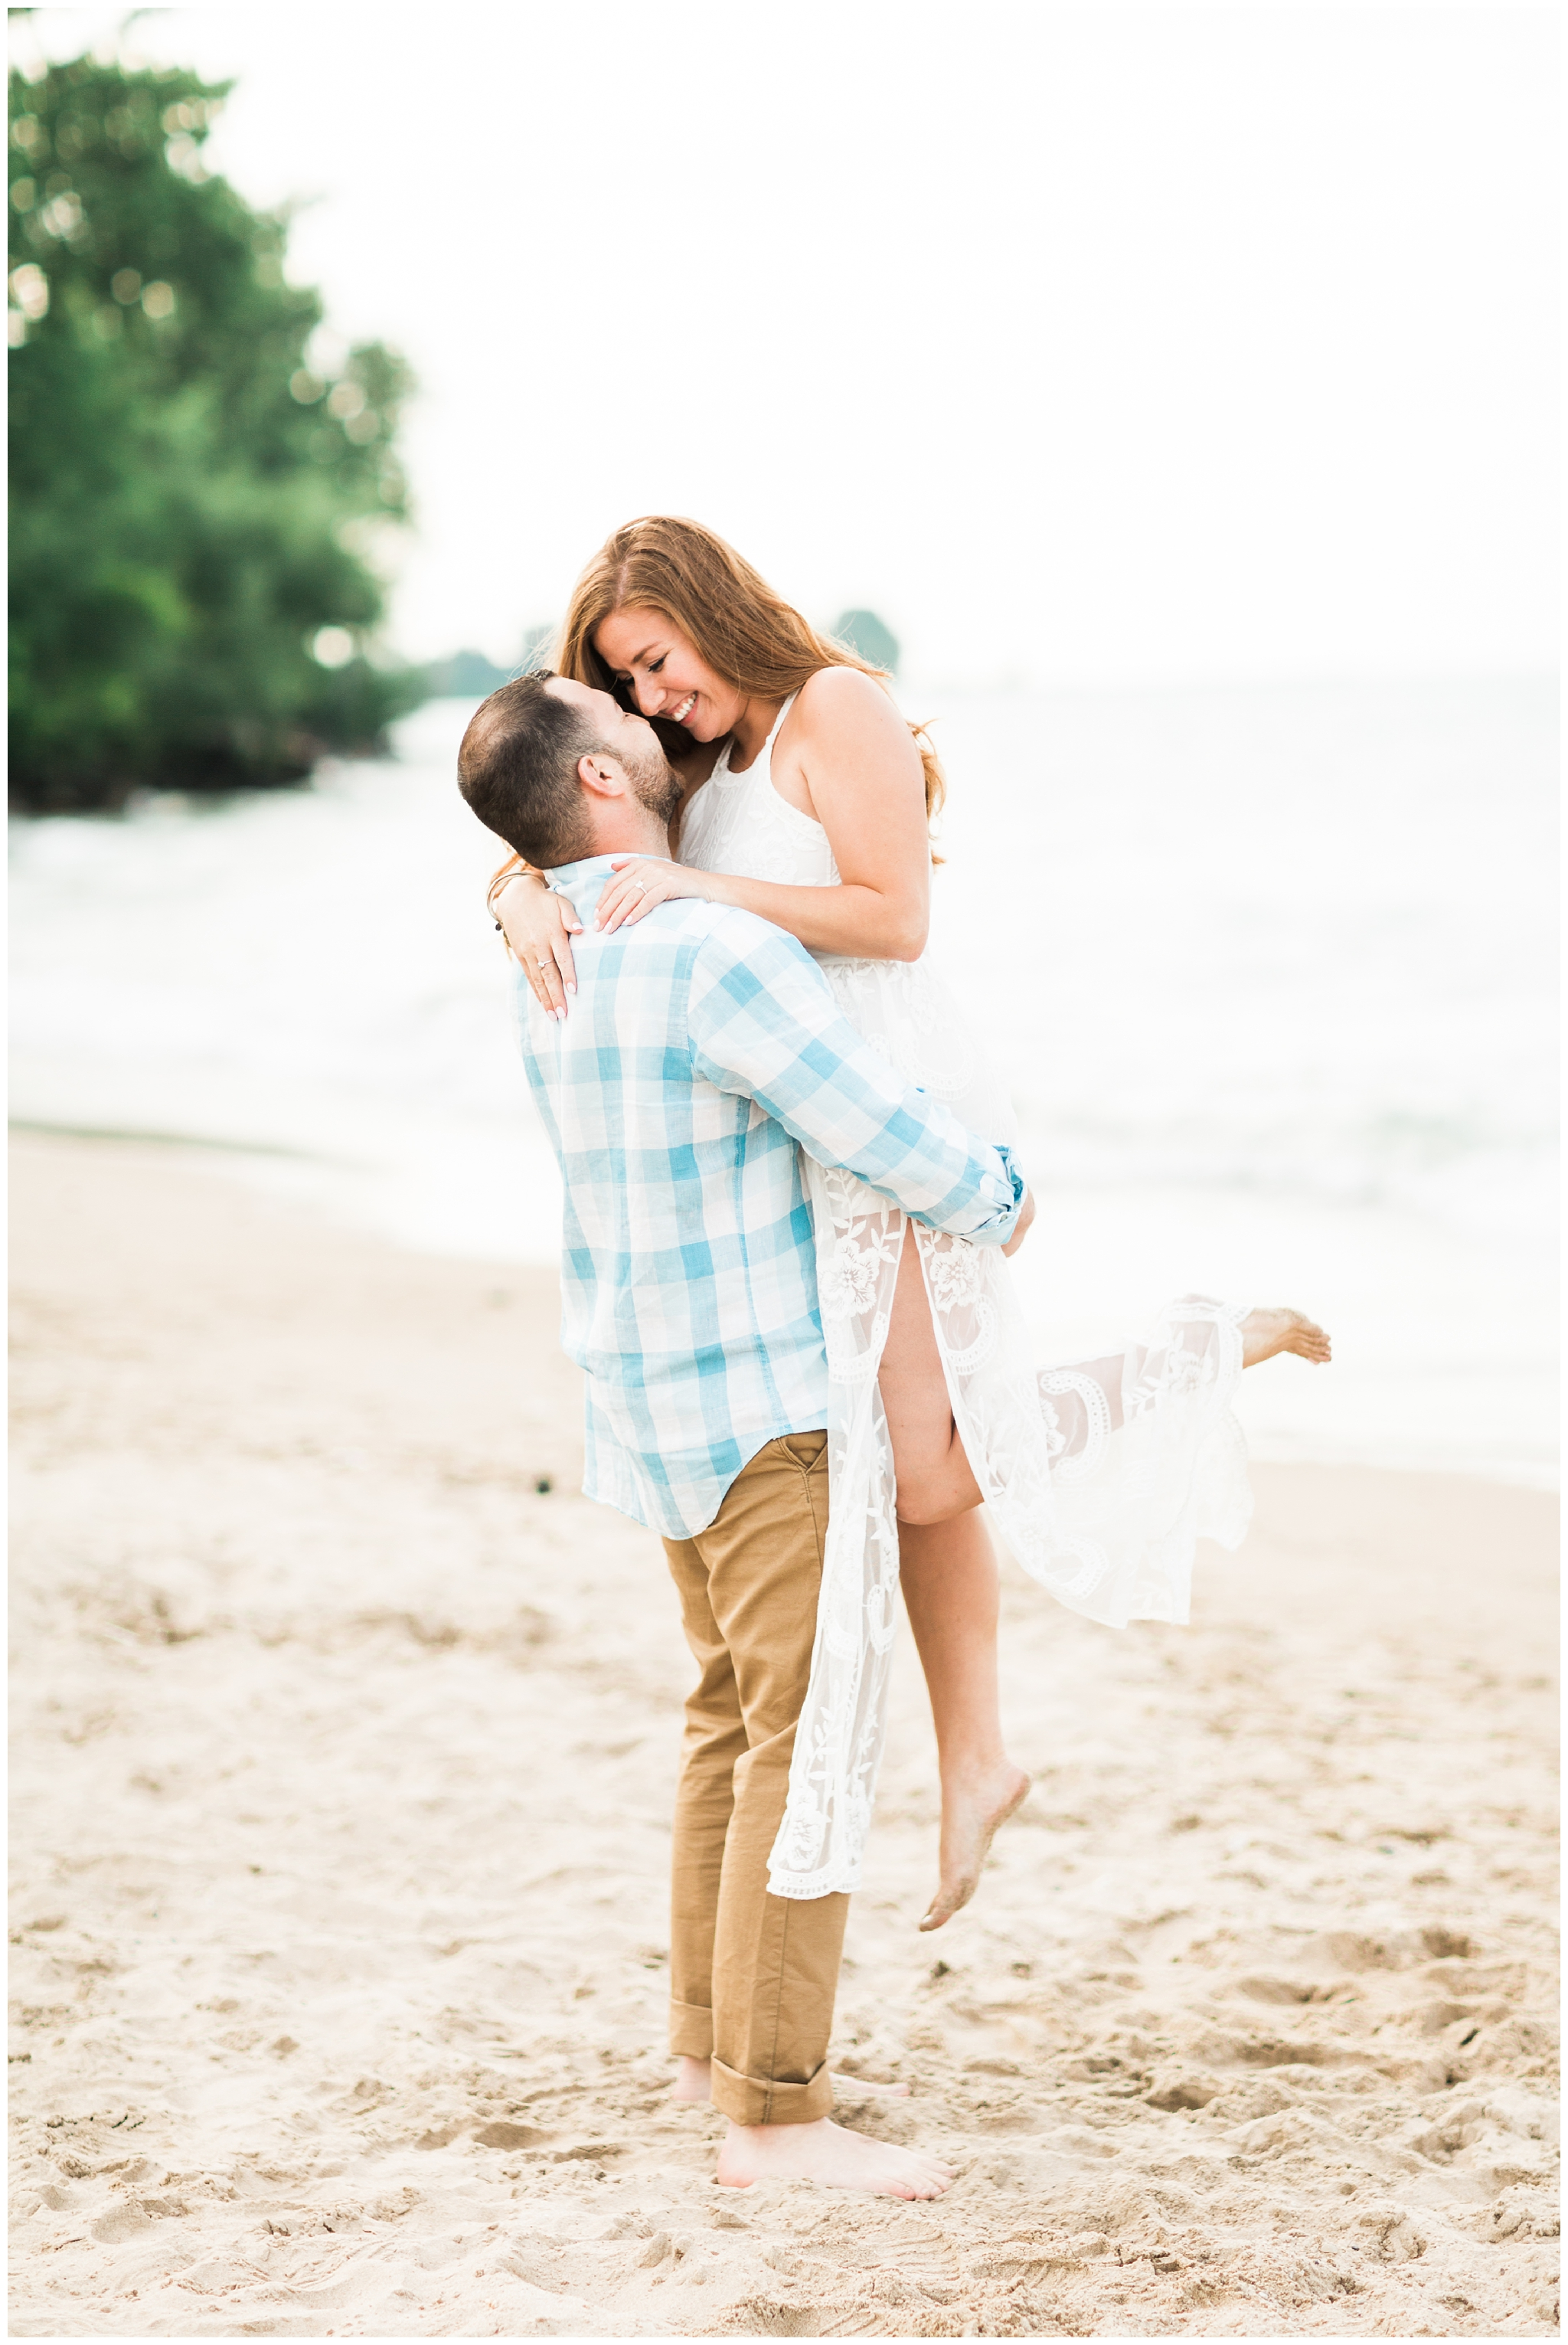 RebeccaHaleyPhotography_chicagoengagementsession_lakemichiganengagementsession_coloradoengagementphotographer_evanstonengagementphotographer_lighthousebeach_lighthousebeachengagementsession_0009.jpg